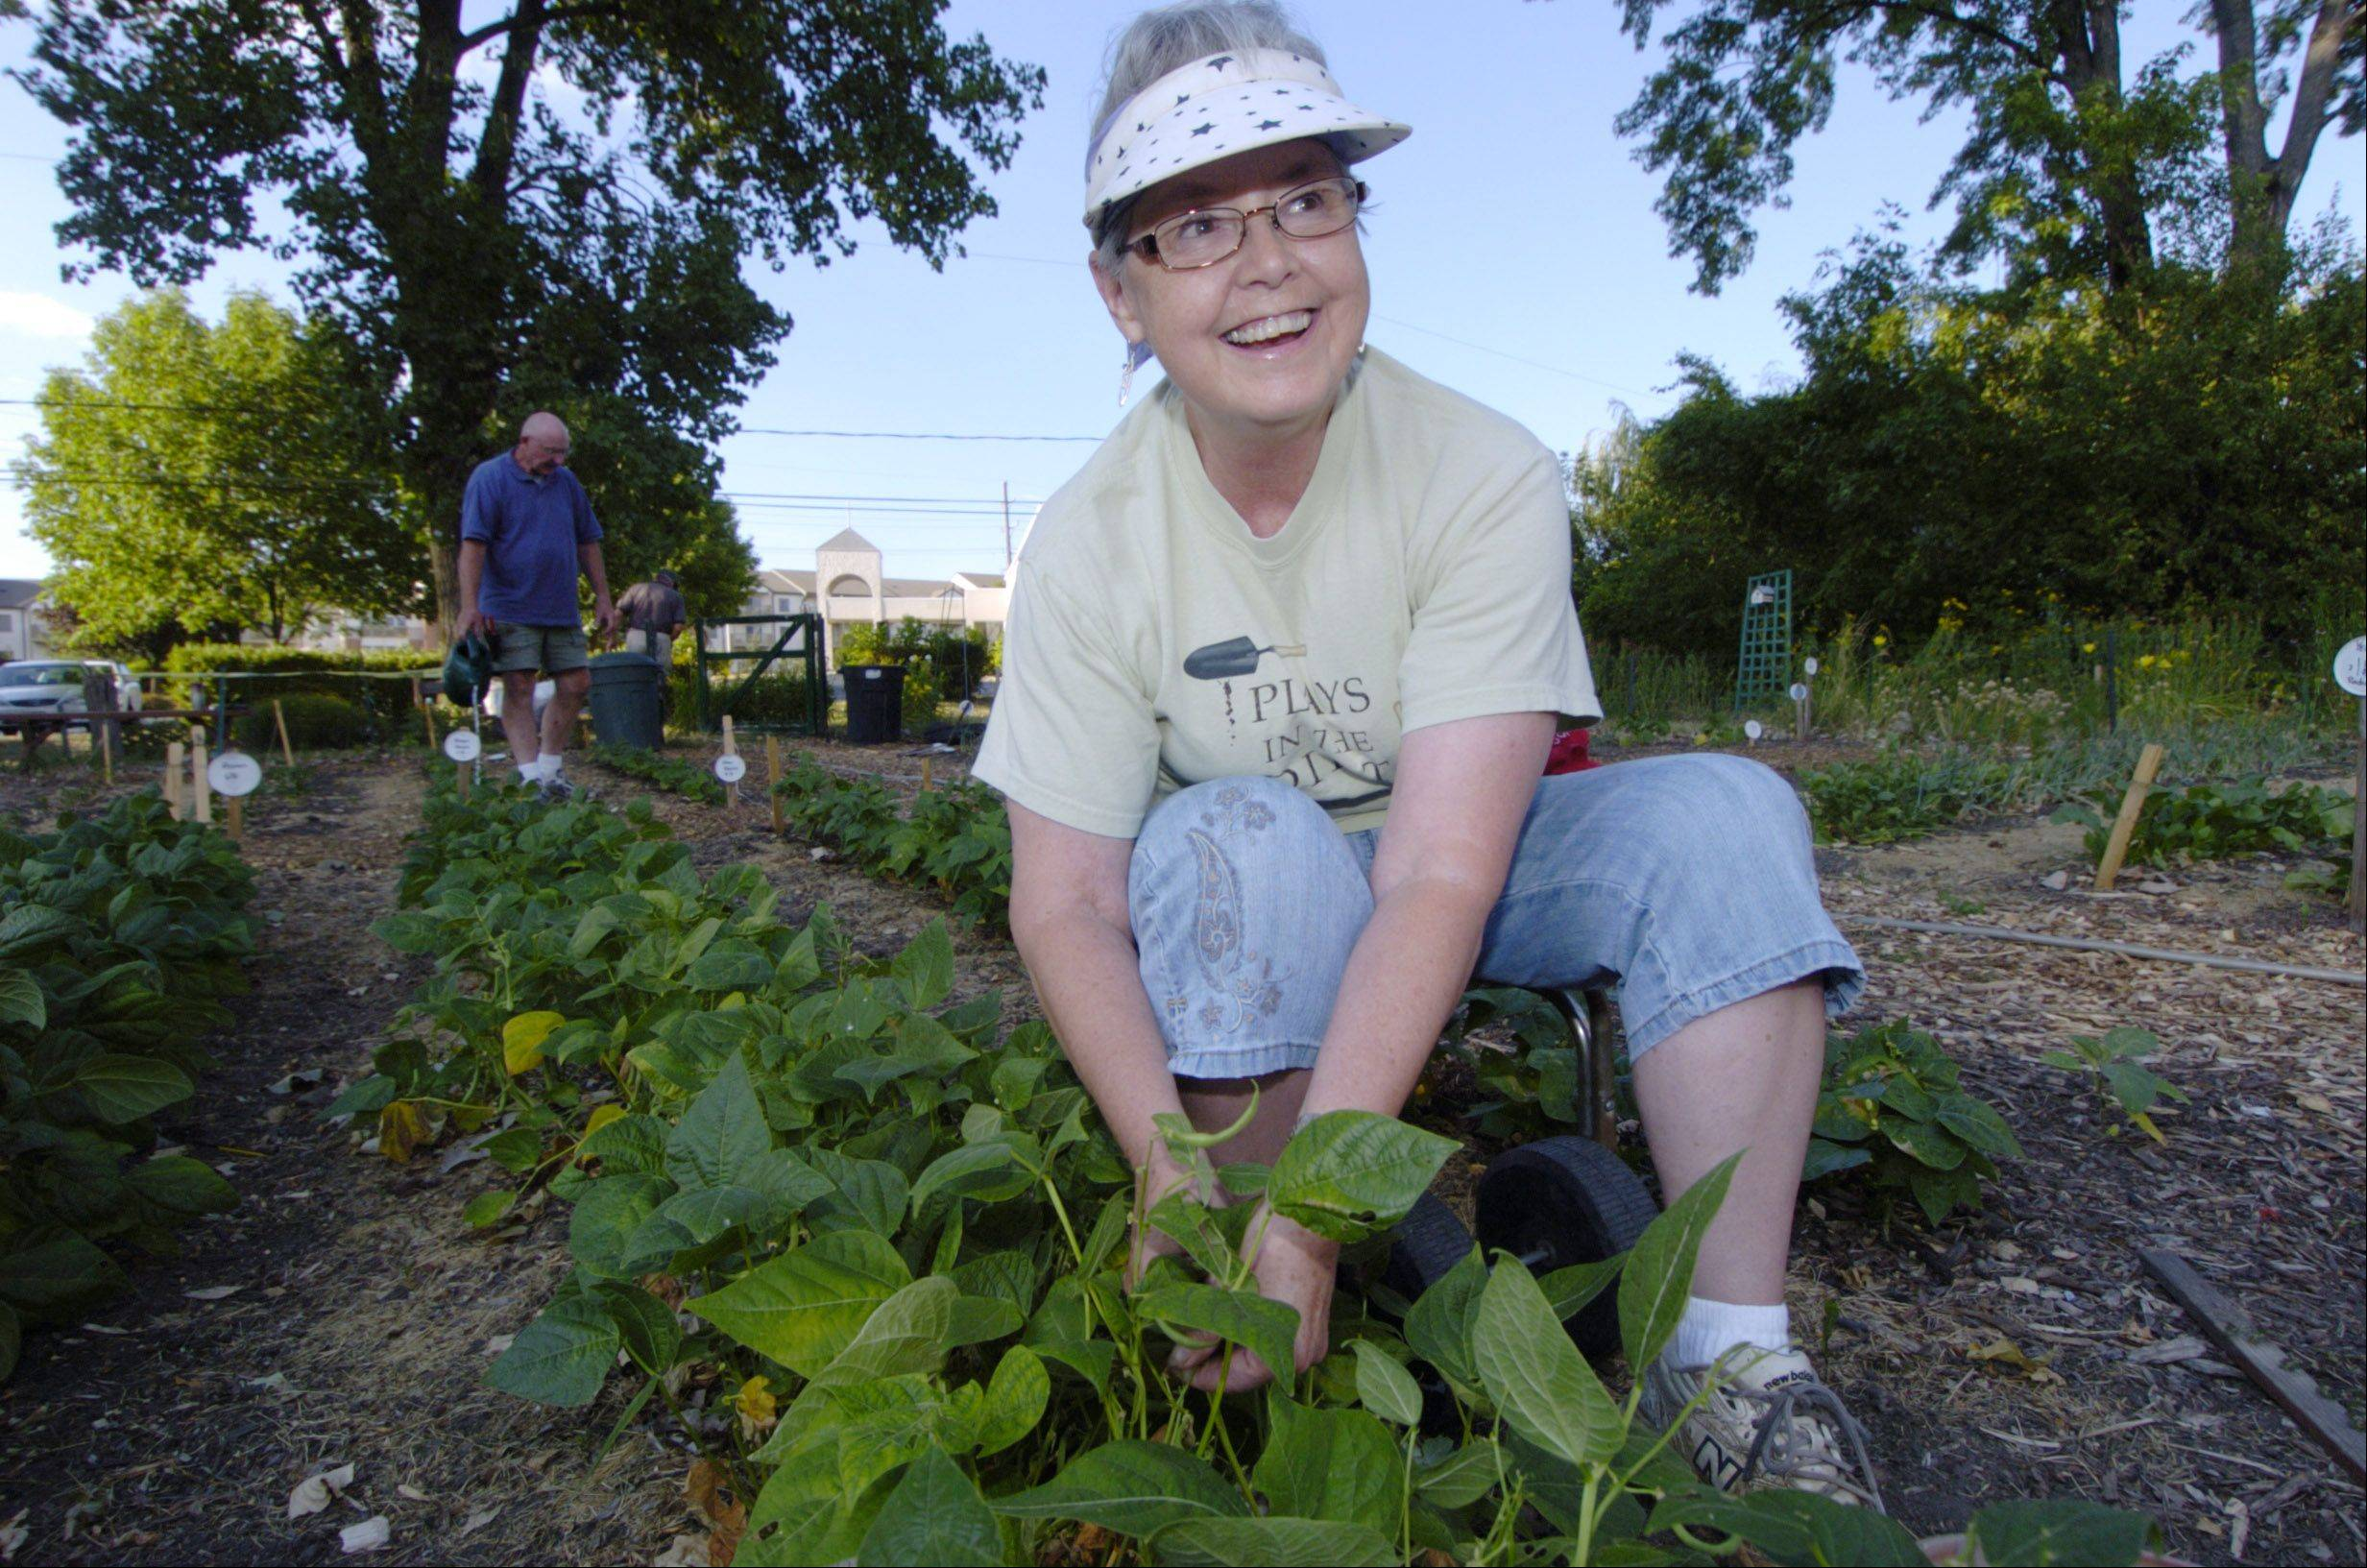 Deanna Bruckner picks green beans as members of the Schaumburg Garden Club, including Steve Larson, background, work at their Giving Garden at Lord of Life Church in Schaumburg.